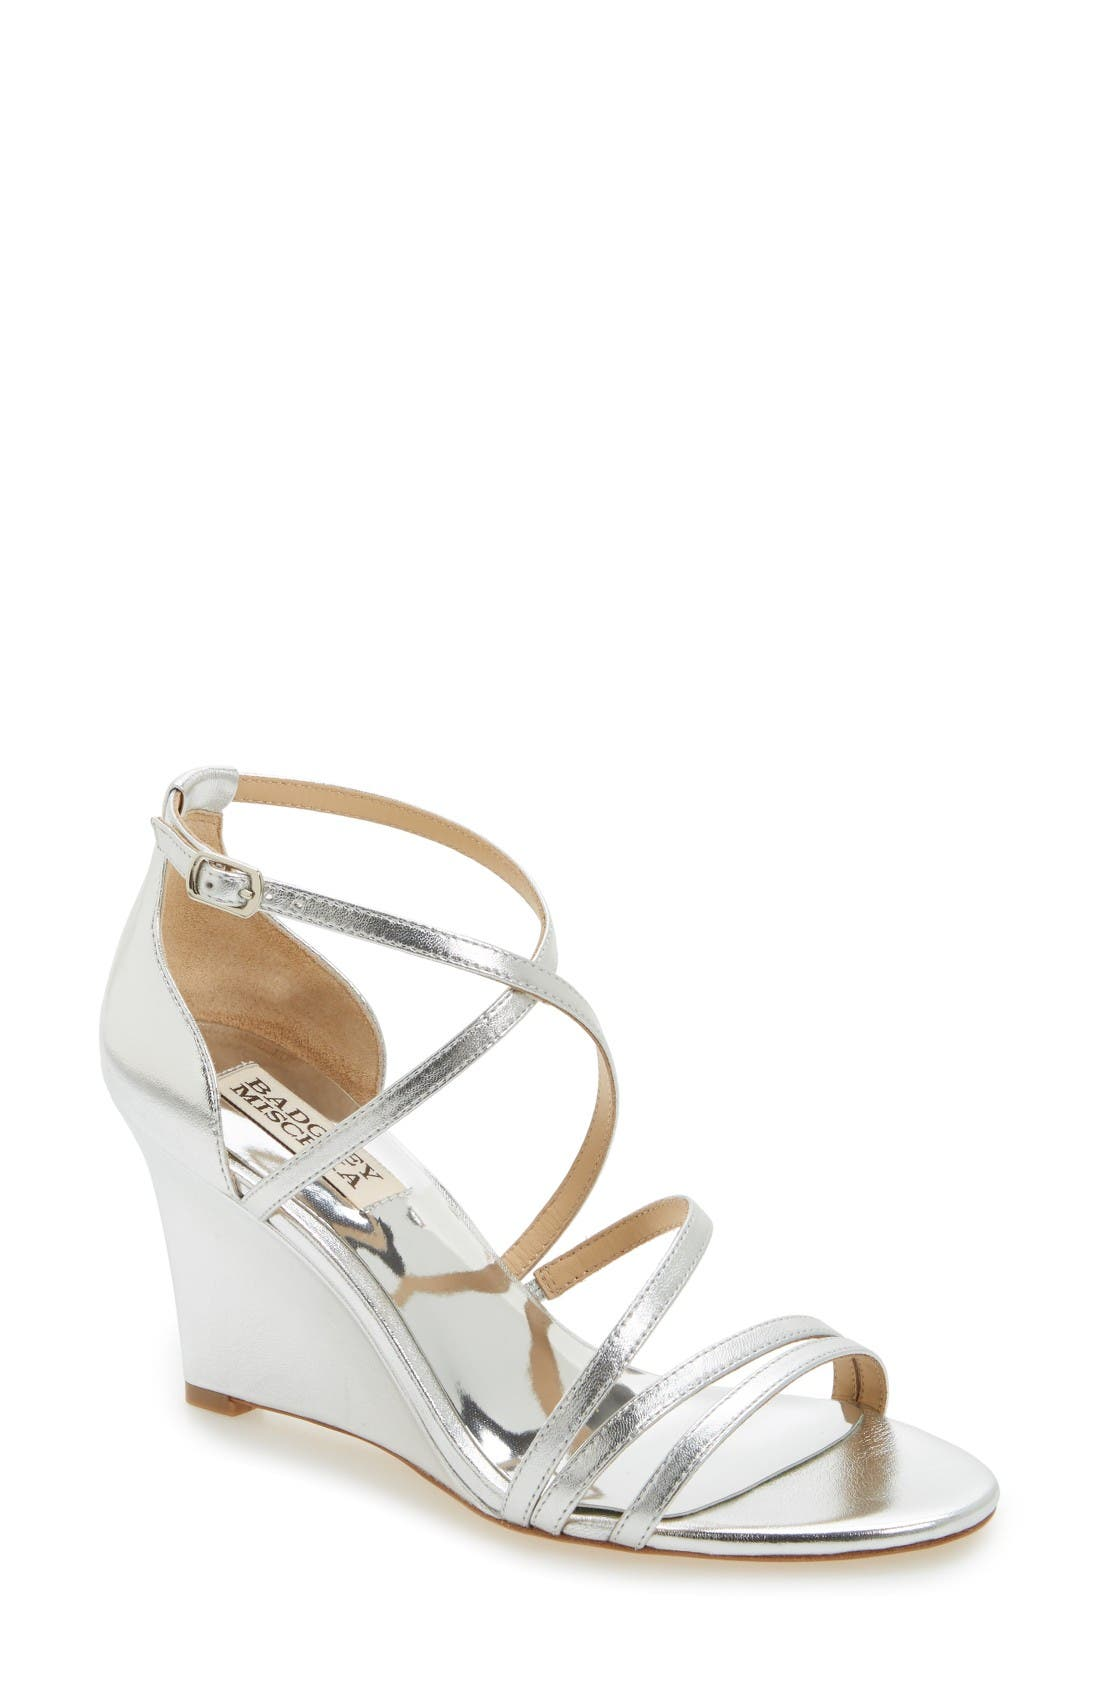 Alternate Image 1 Selected - Badgley Mischka Bonanza Strappy Wedge Sandal (Women)